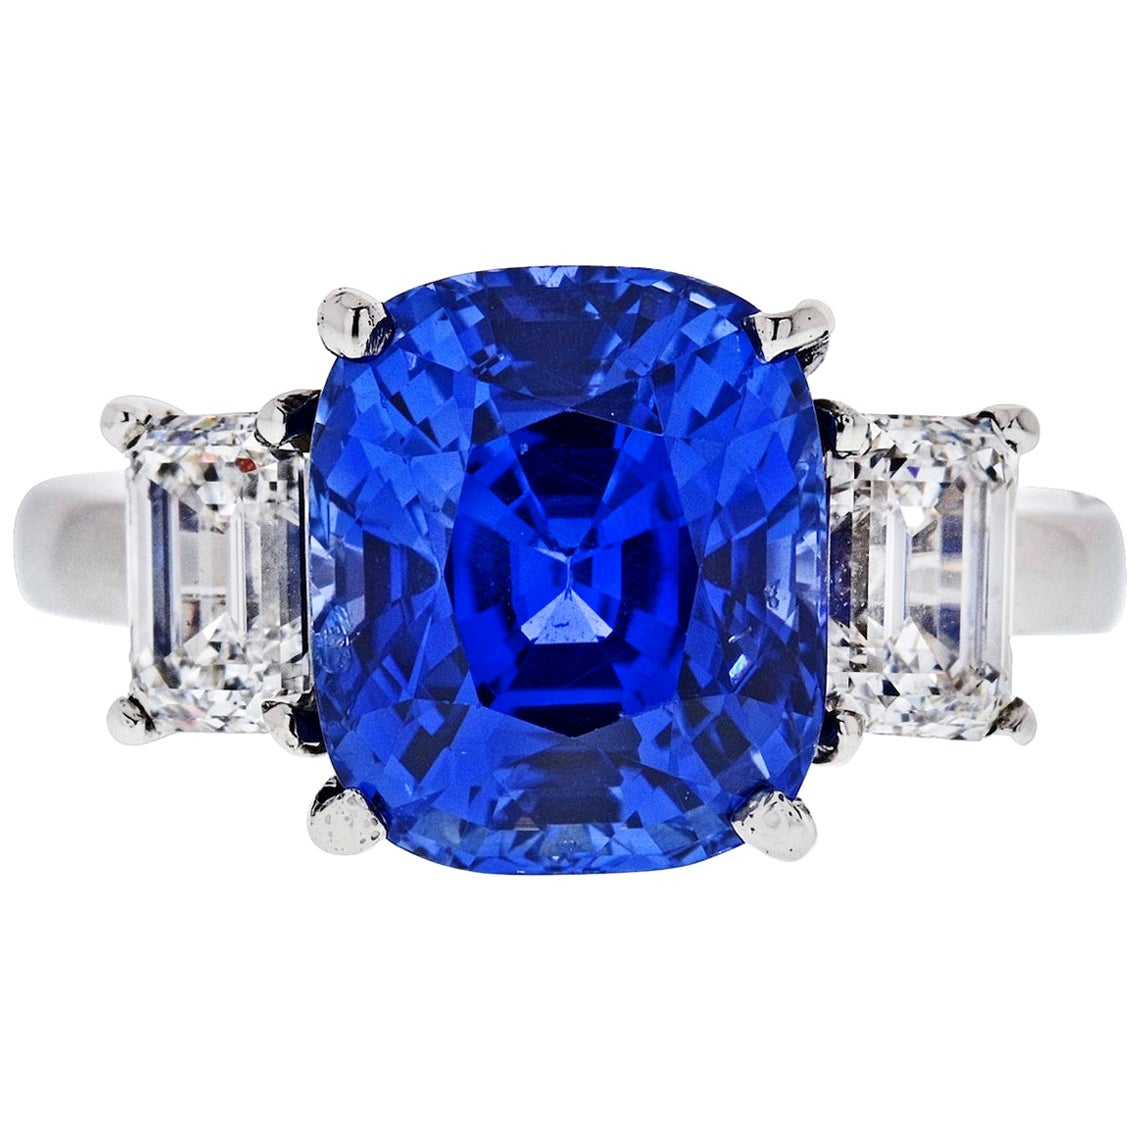 8.86 Carat Cushion Cut Blue Sapphire Three-Stone Diamond Platinum Ring